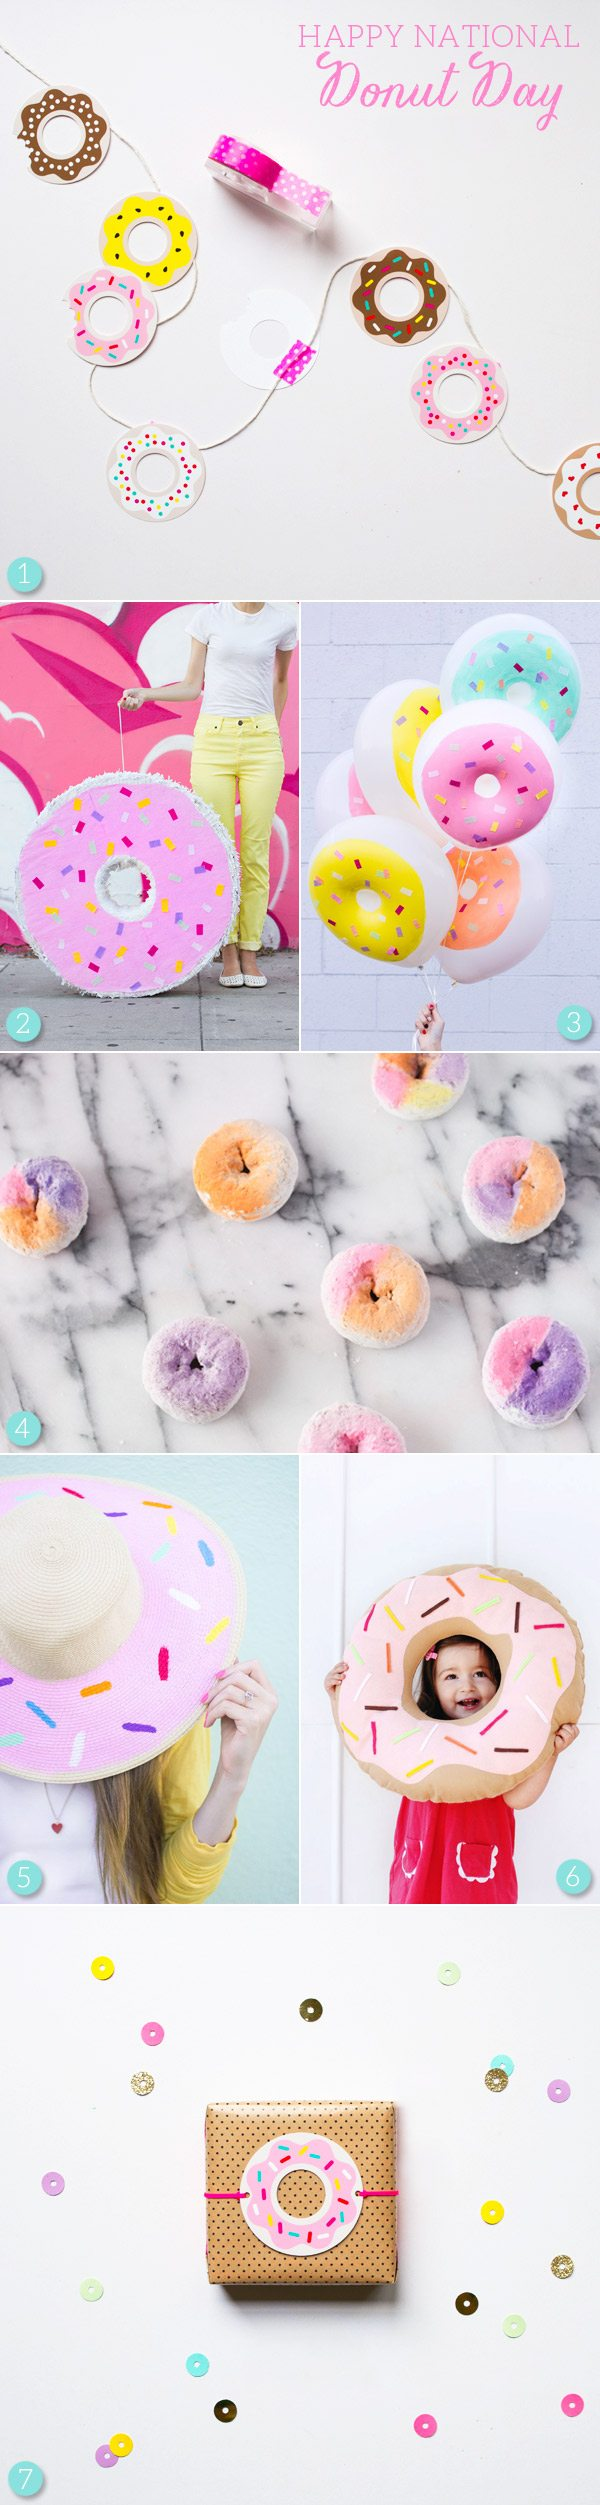 Diy Donut Crafts For National Donut Day The Sweetest Occasion